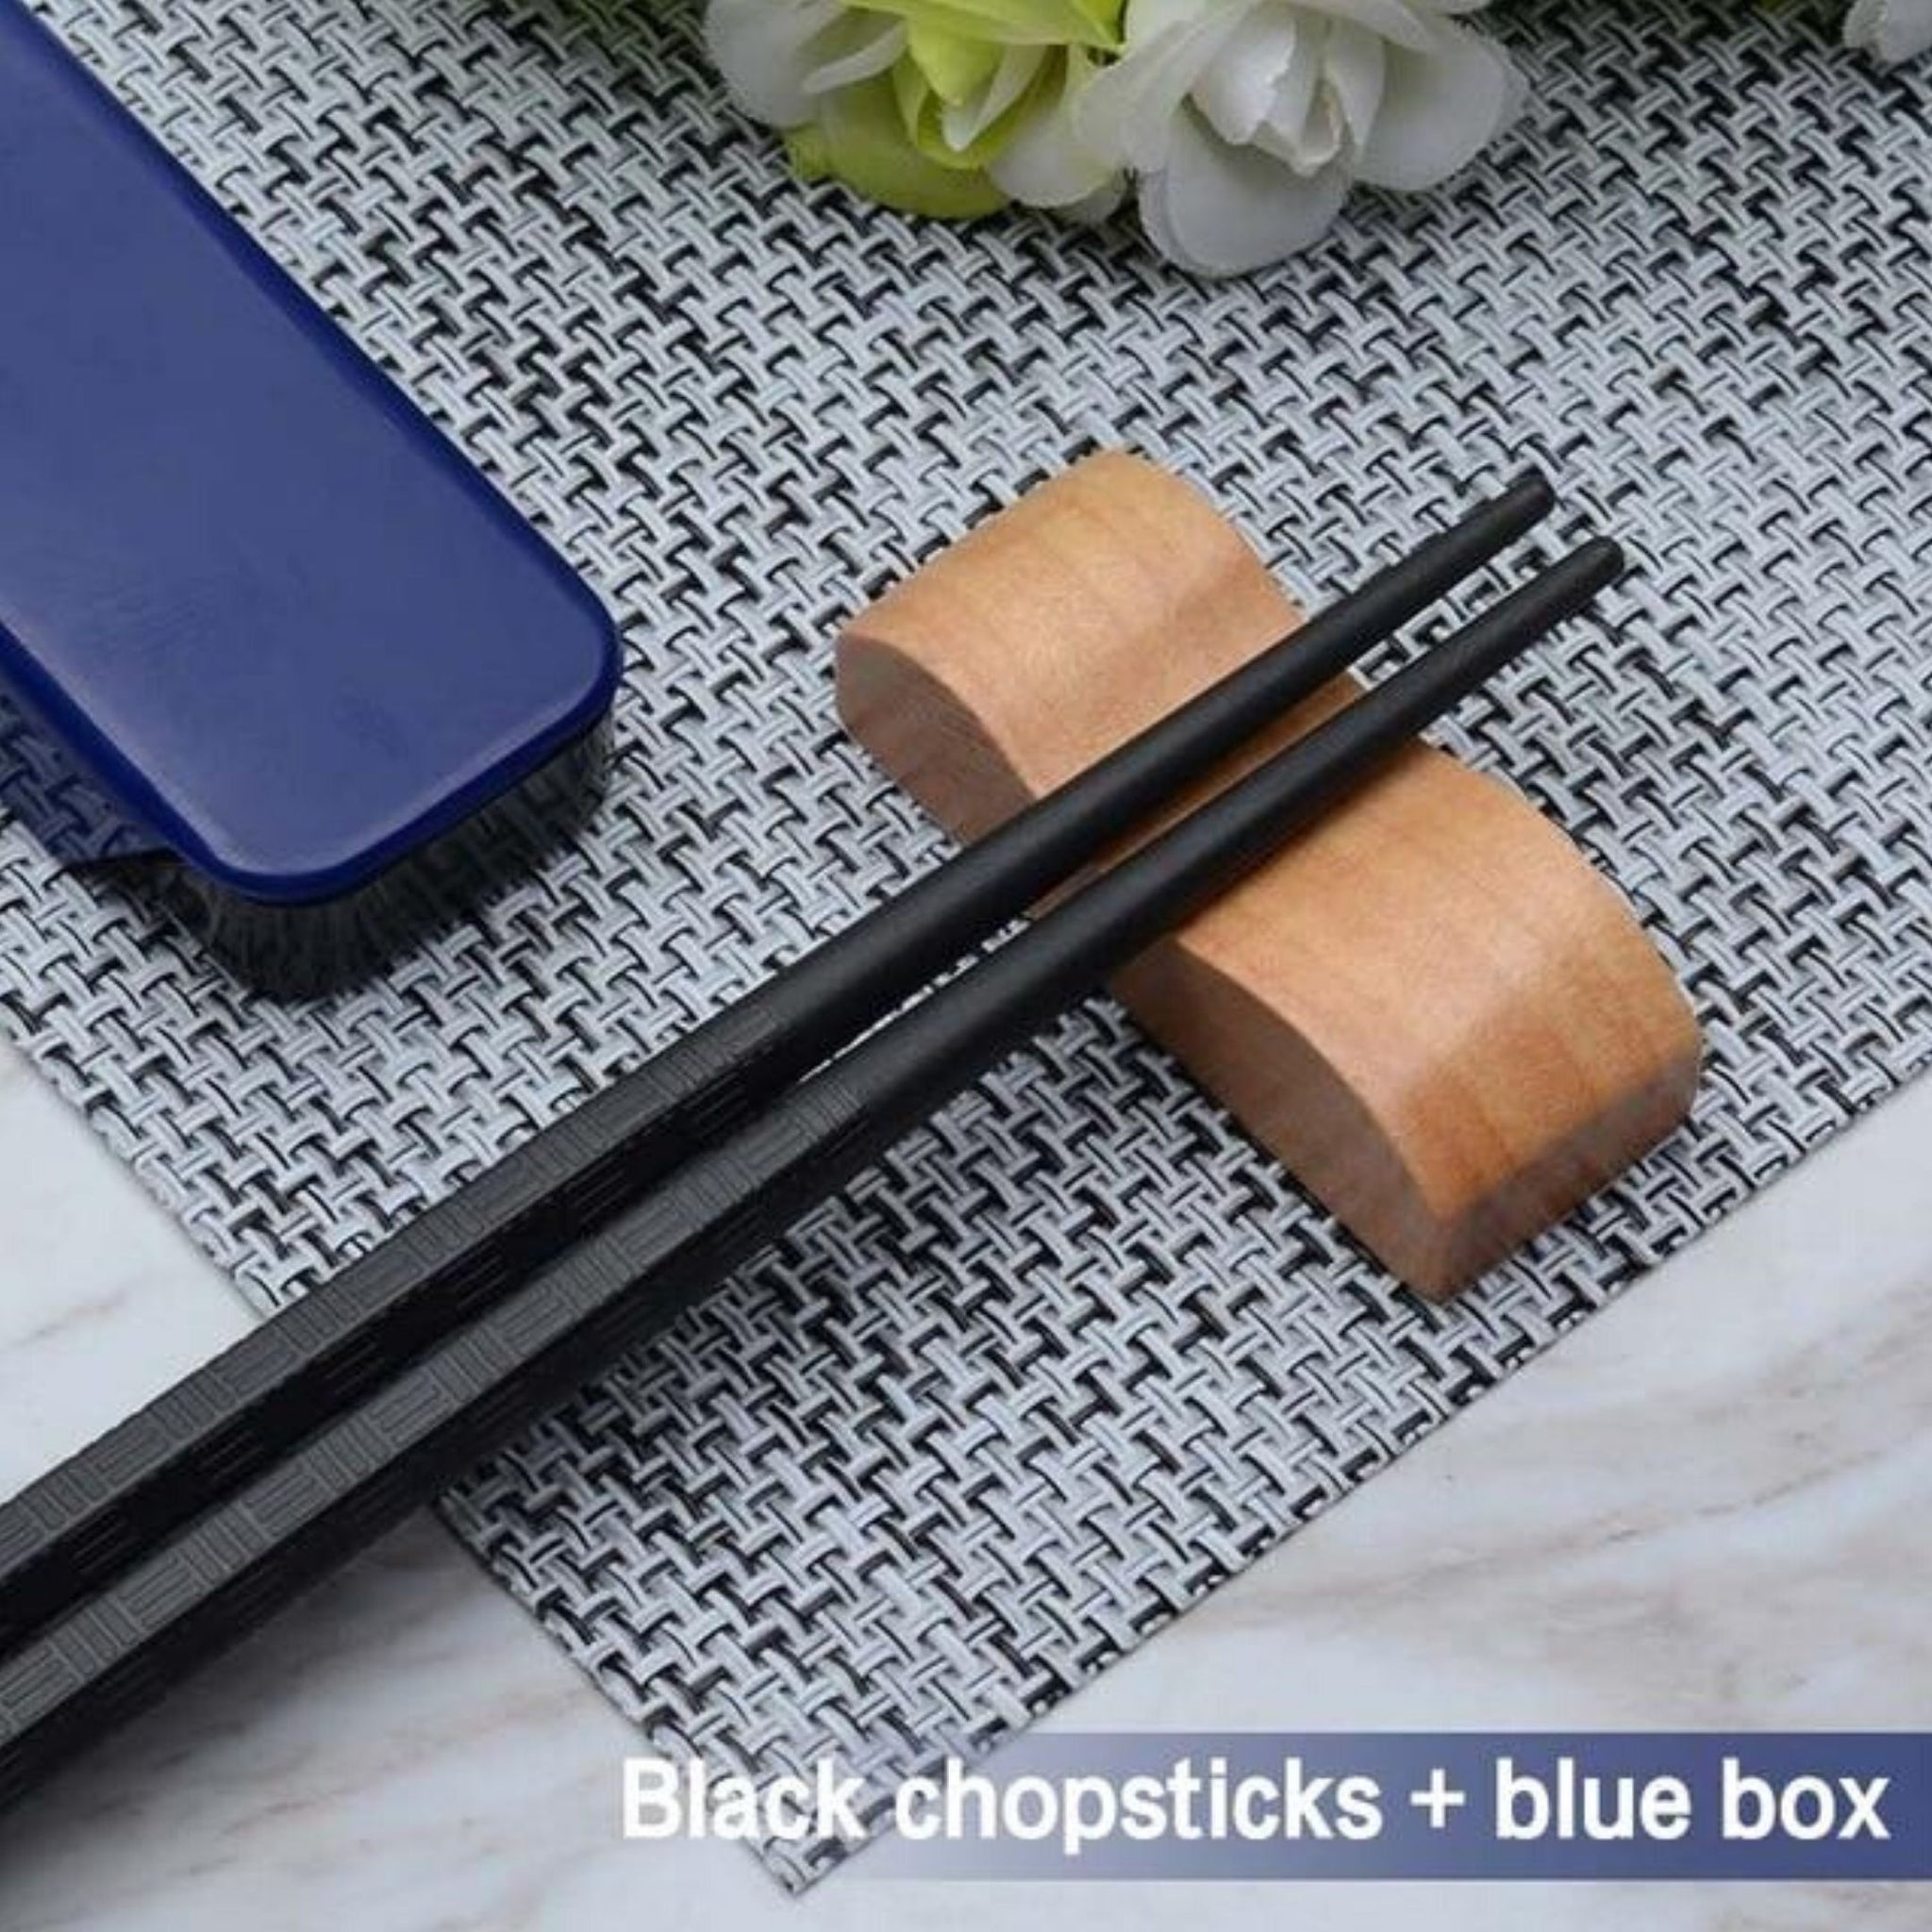 Japanese Travel Black Chopsticks Set with Case Suitable for School Office Camping Traveling Trend